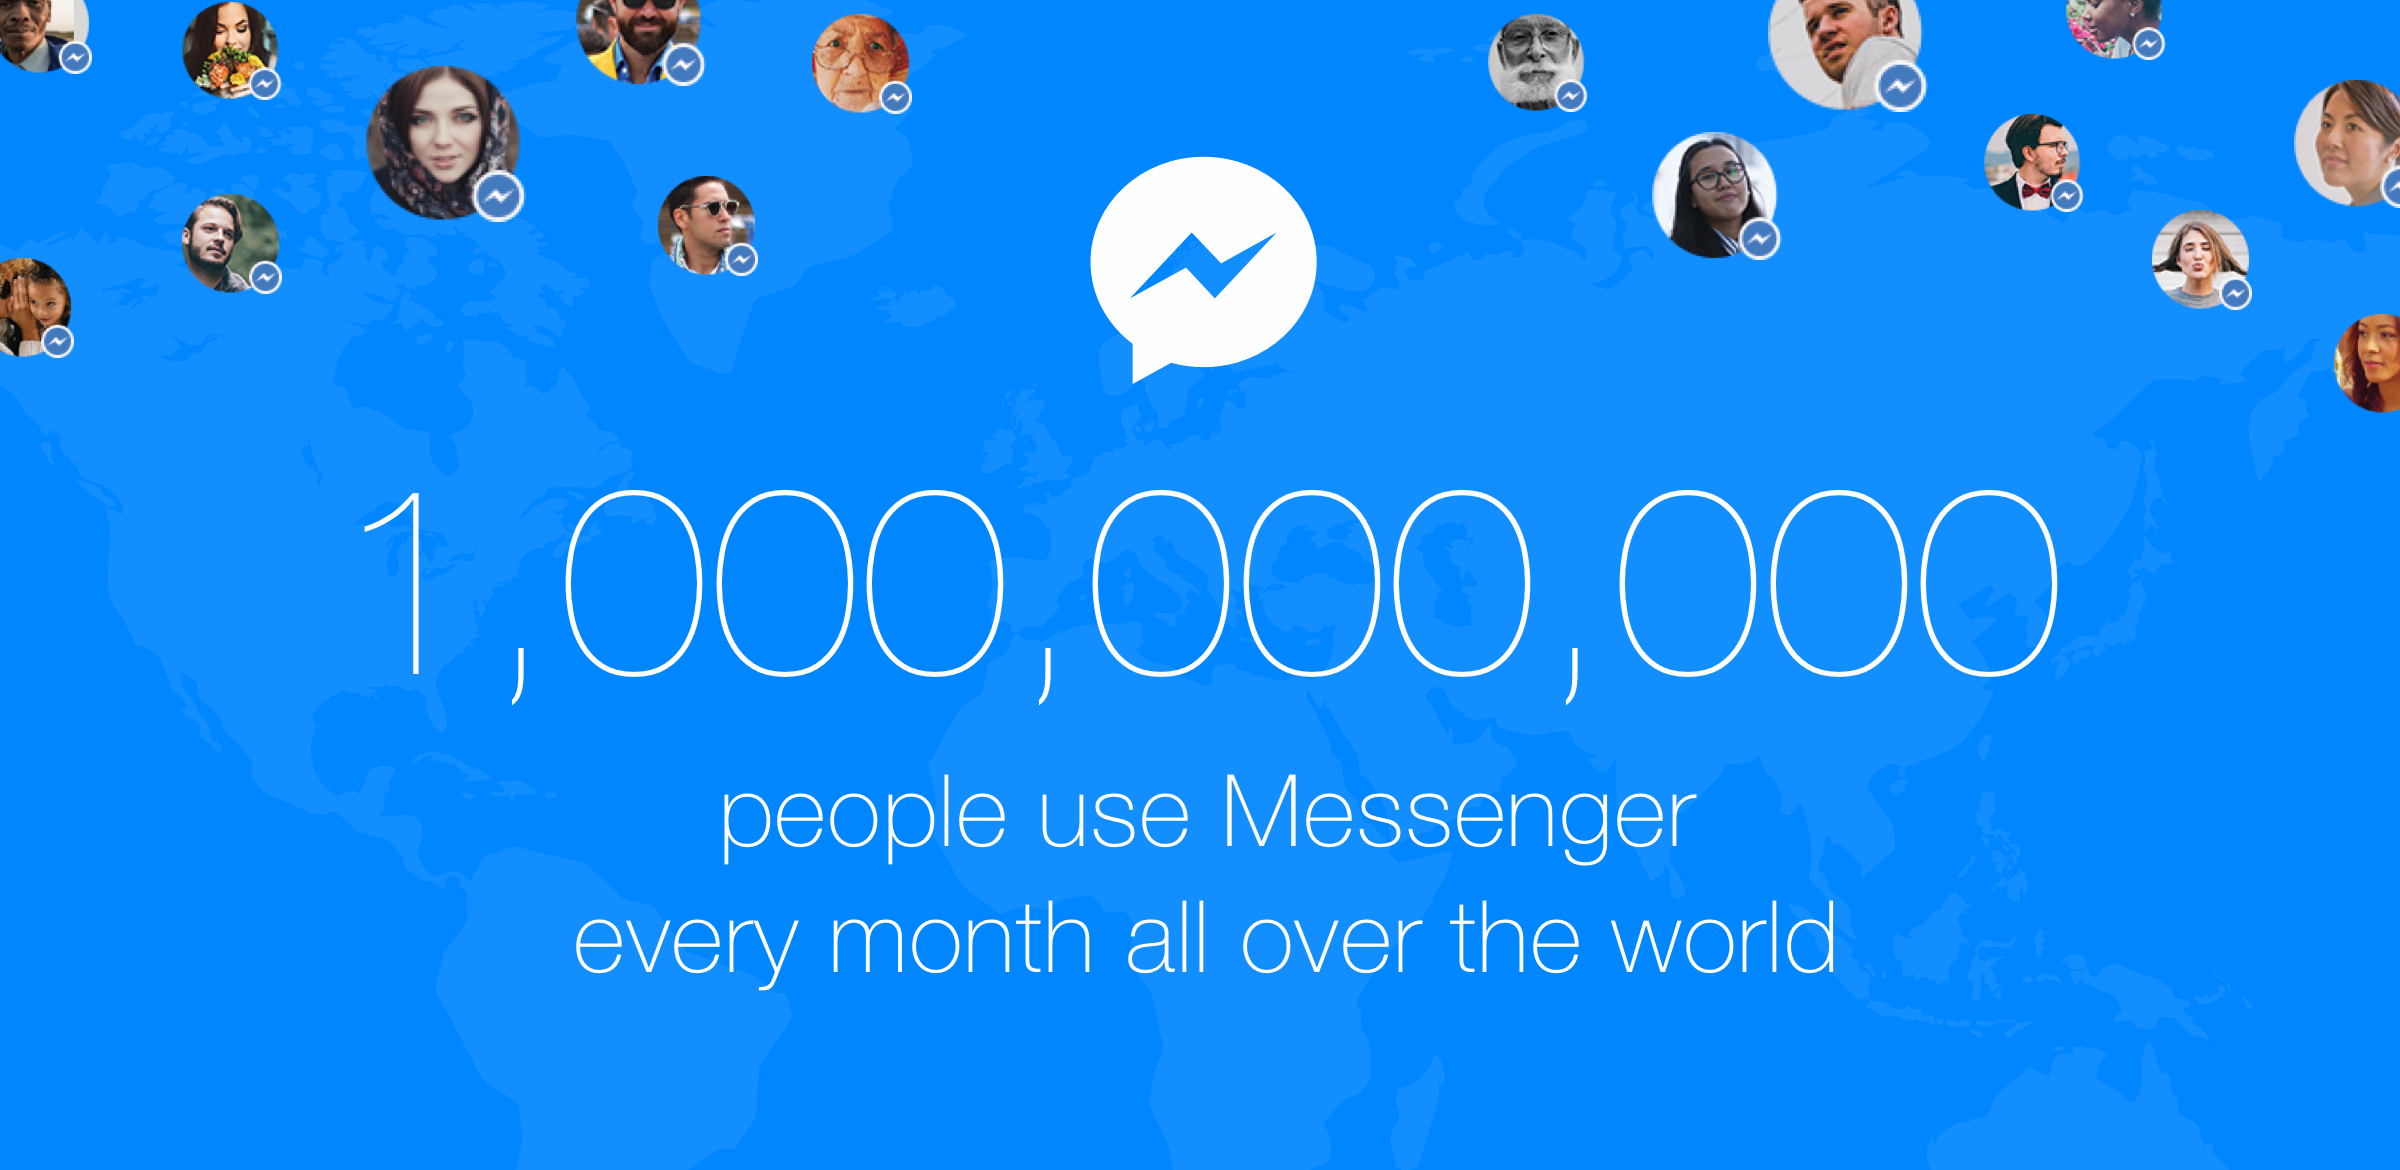 Facebook Messenger billion users teaser 001